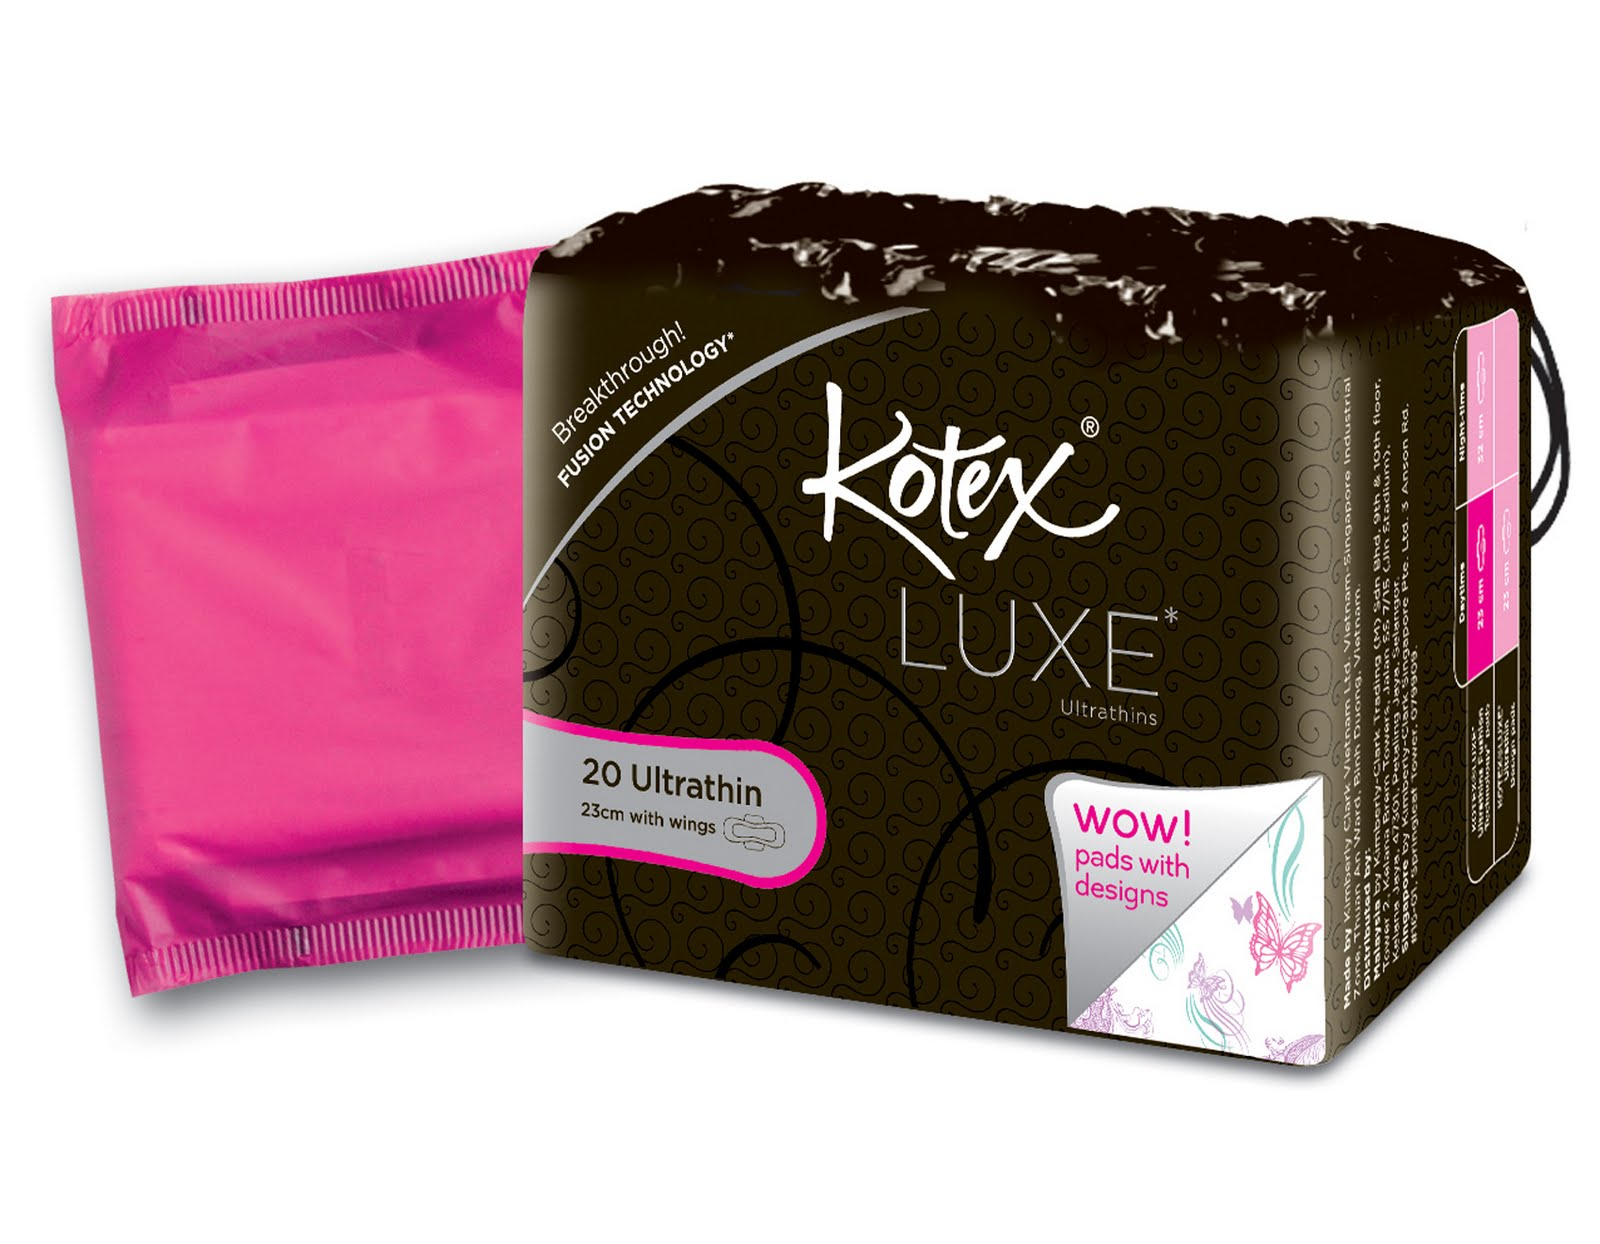 trendulge kotex luxe ultrathin design pads. Black Bedroom Furniture Sets. Home Design Ideas